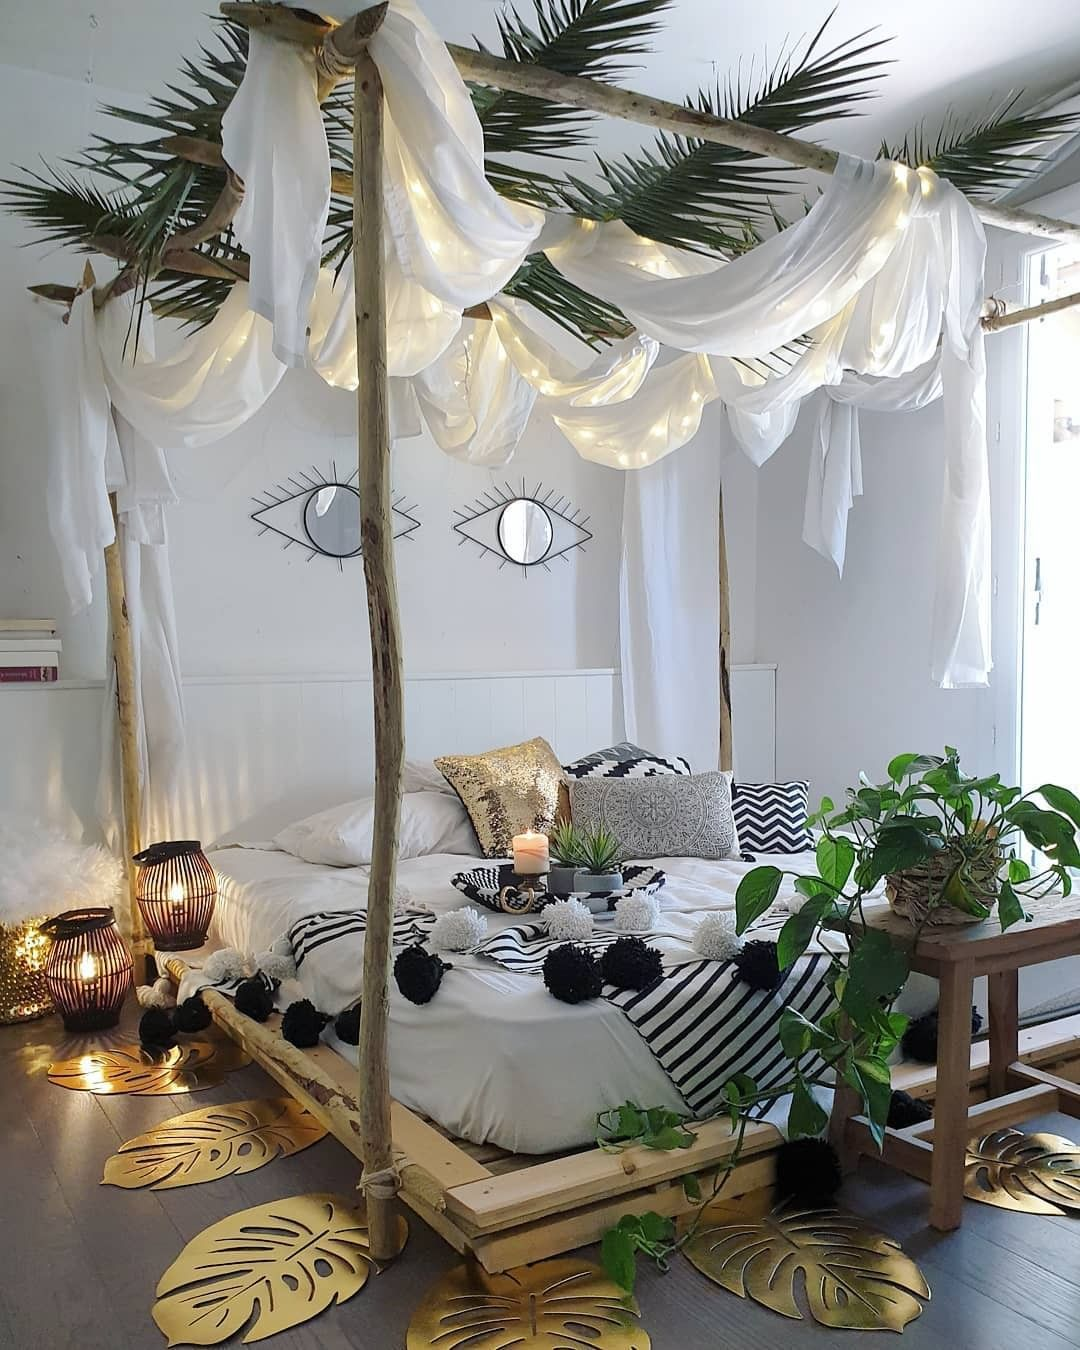 cool Bohemian bedroom idea with bed frame with bed canopy and white curtains vivid greenery ornate Boho style floor light fixtures